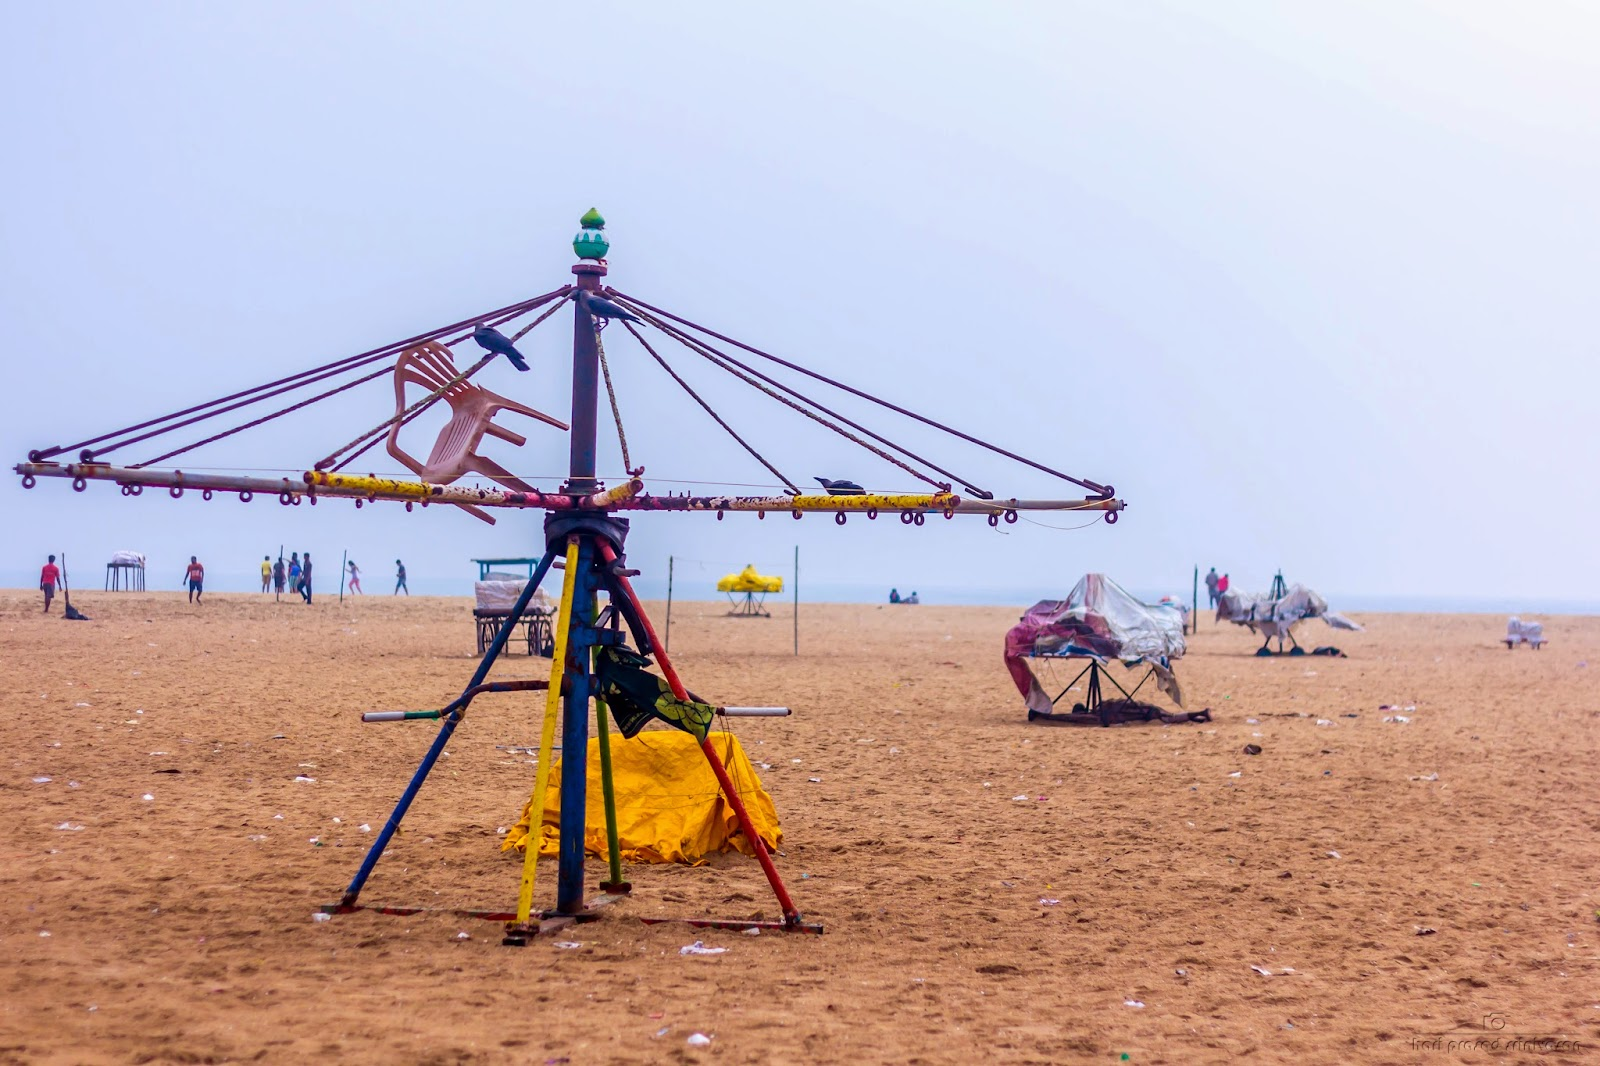 This is the larger version of the merry go round in Chennai beach on which Adults can use. Photo taken on a cloudy day.